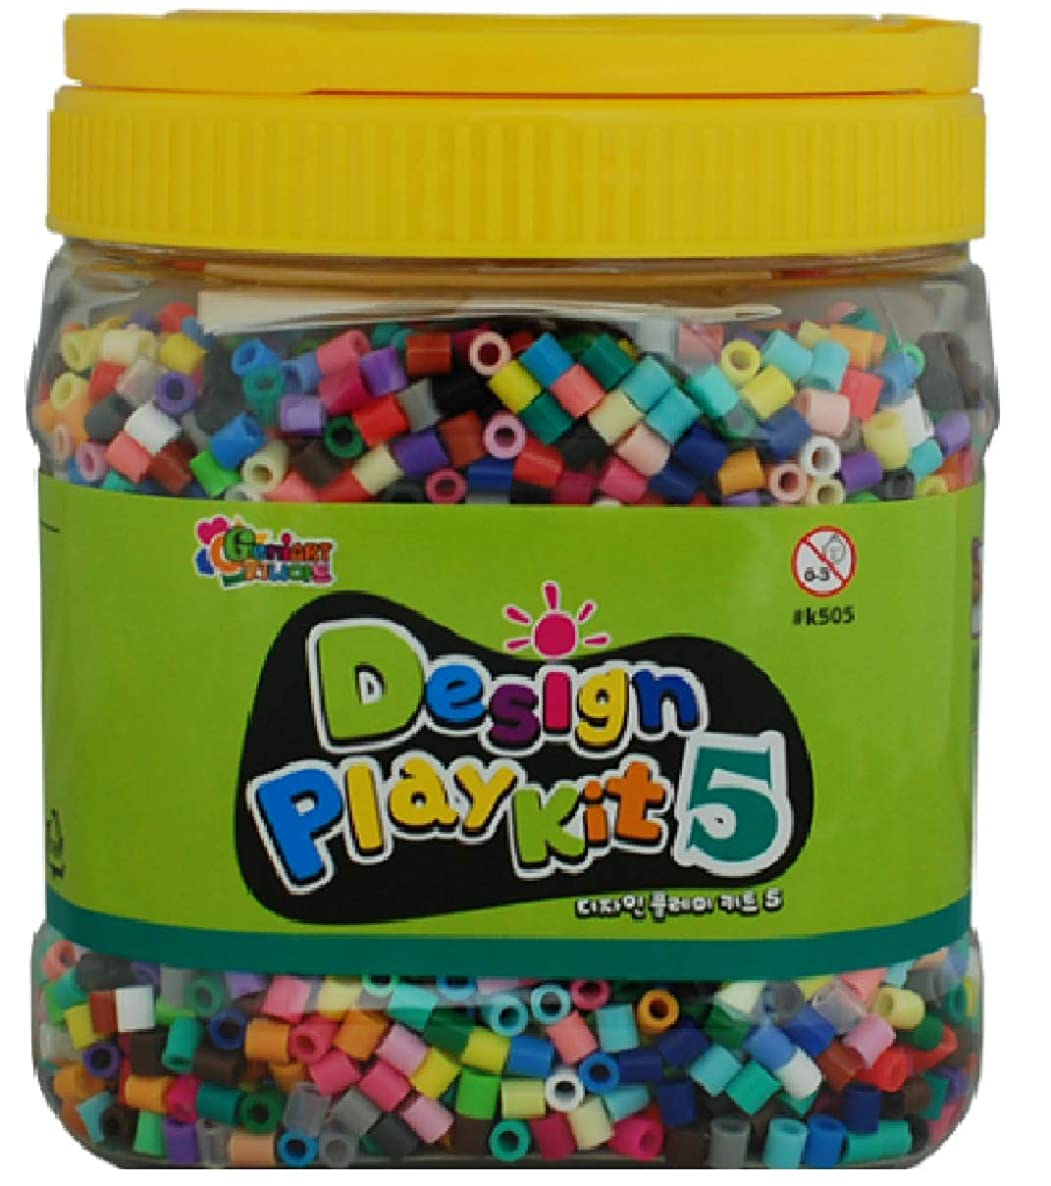 Fuse Beads - Design Play Kit 5 - Made in Korea - Includes 5,500+ 5mm Mixed Color Fuse Beads, a Sheet of Ironing Paper, 3 Pegboards, Tweezers, Instructions, Patterns - Works with Perler Beads